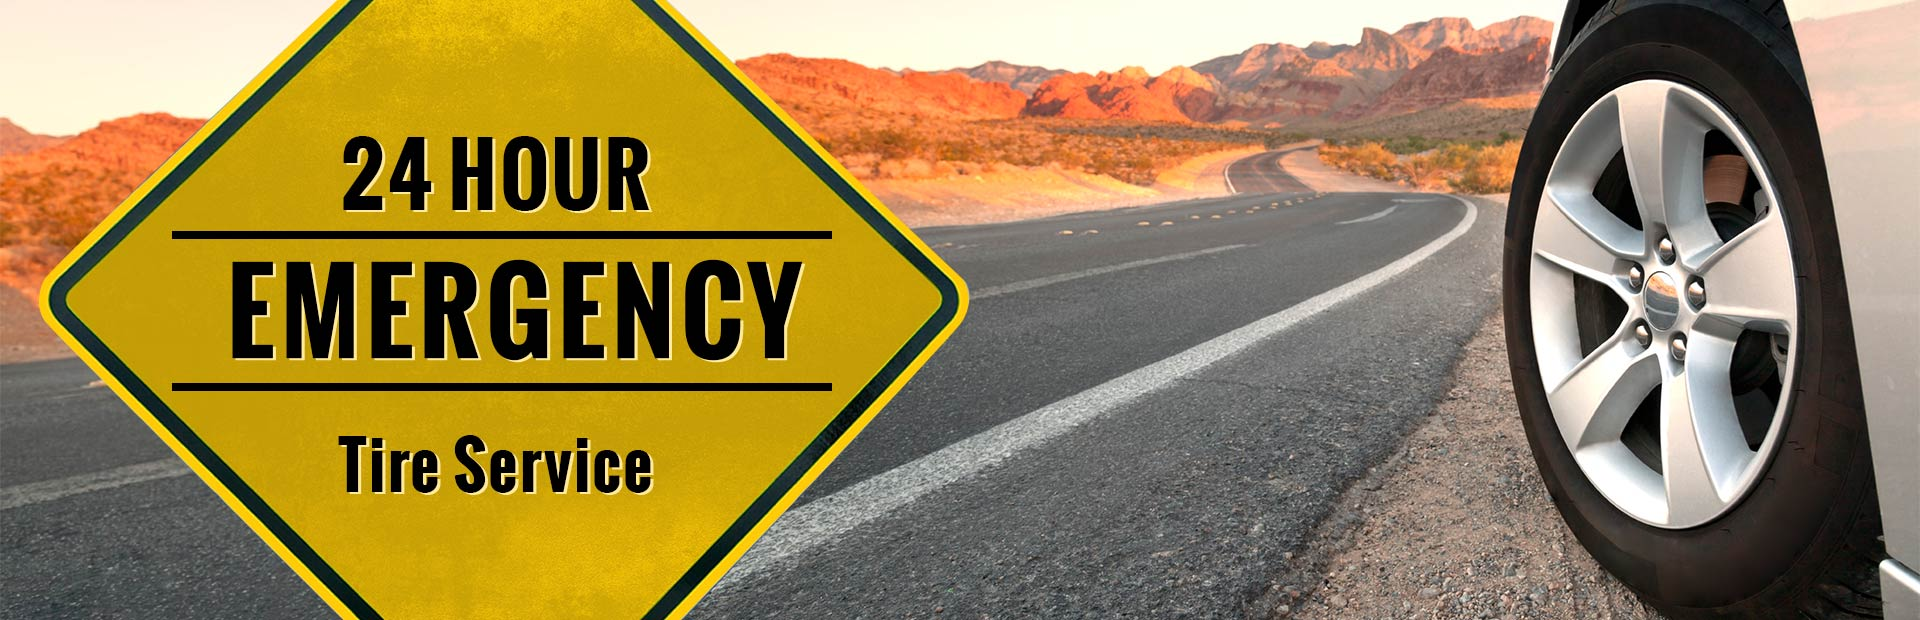 24 Hour Emergency Tire Service: Click here to contact us!